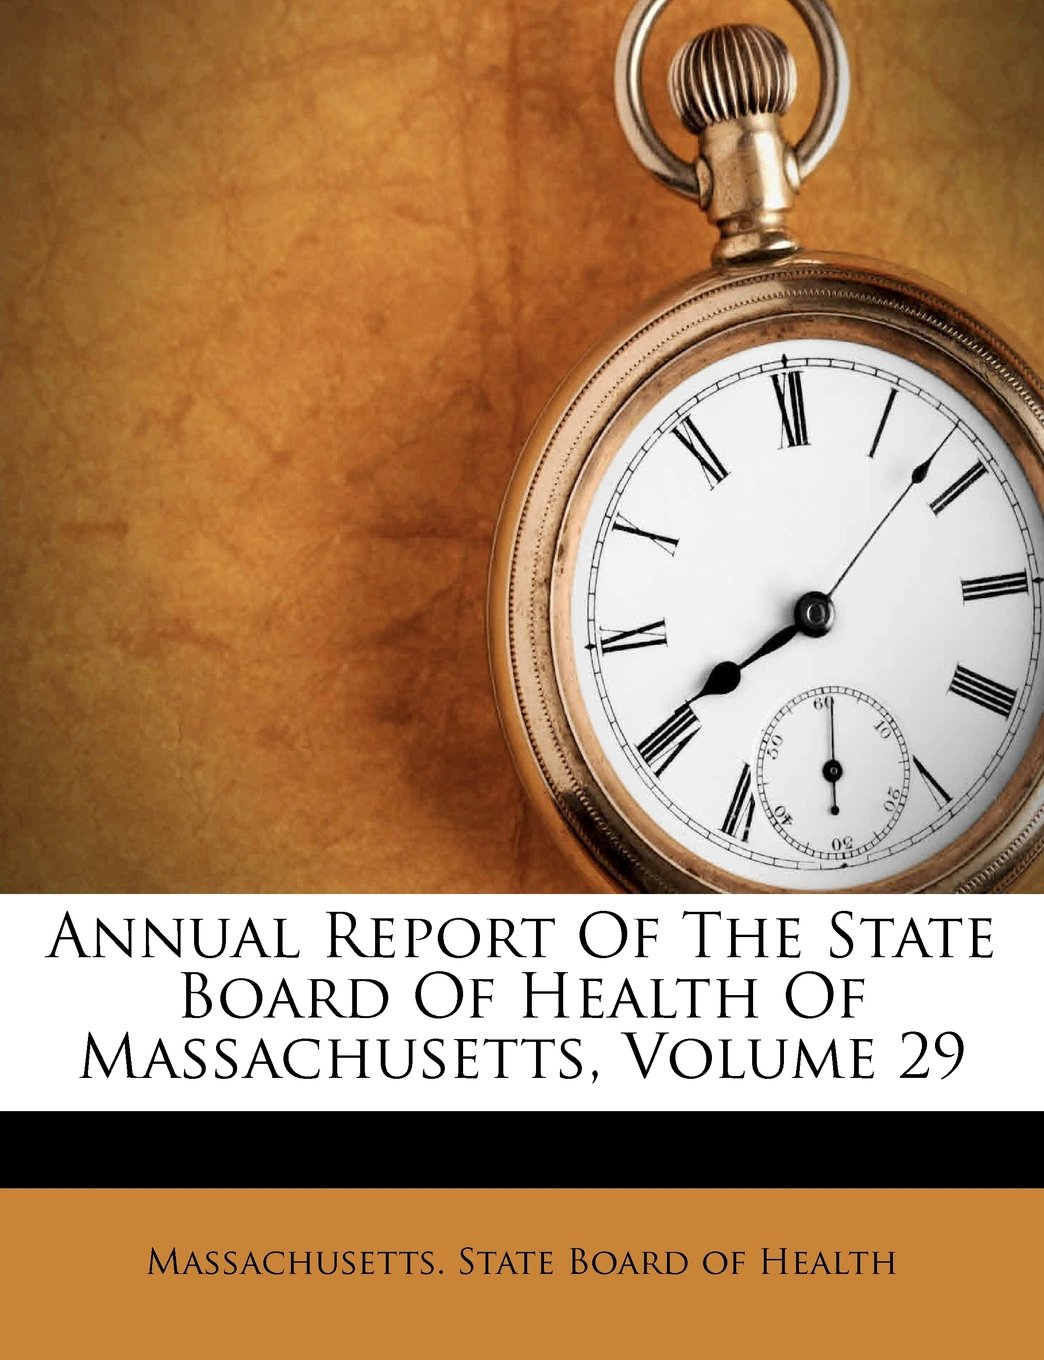 Annual Report Of The State Board Of Health Of Massachusetts, Volume 29 pdf